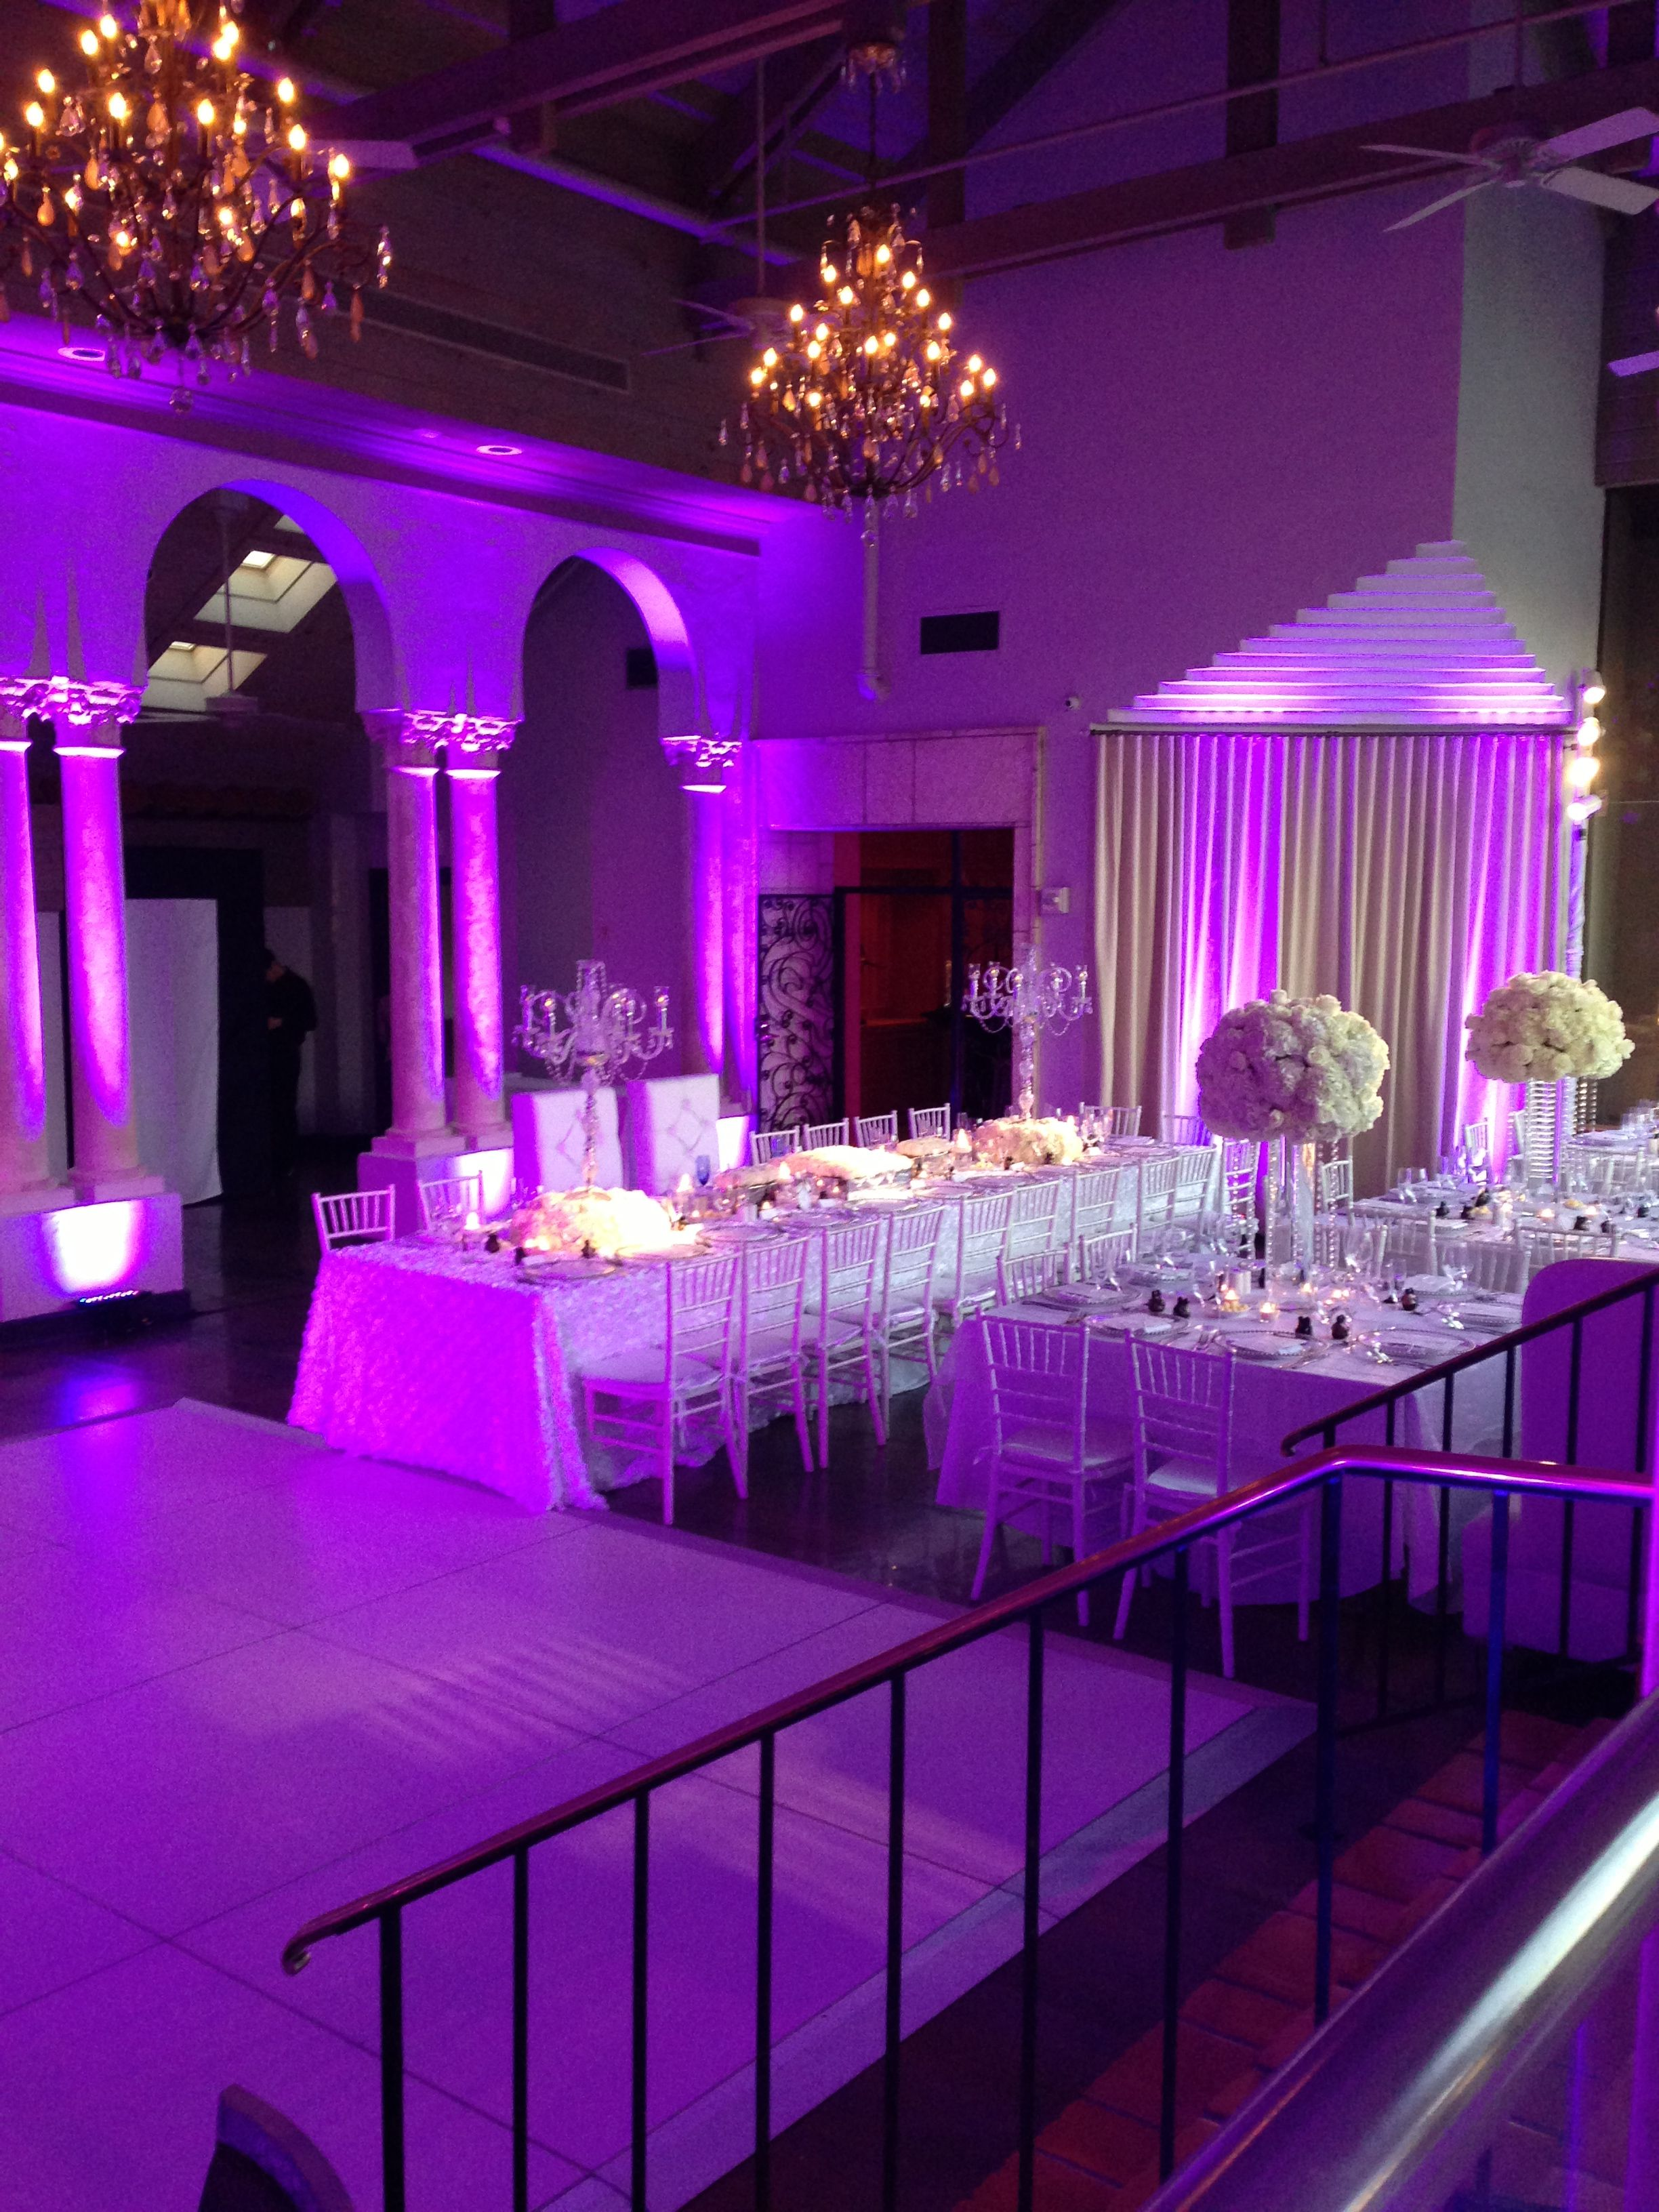 Wedding event background  Coral Gables Country ClubAll white wedding with amazing uplighting